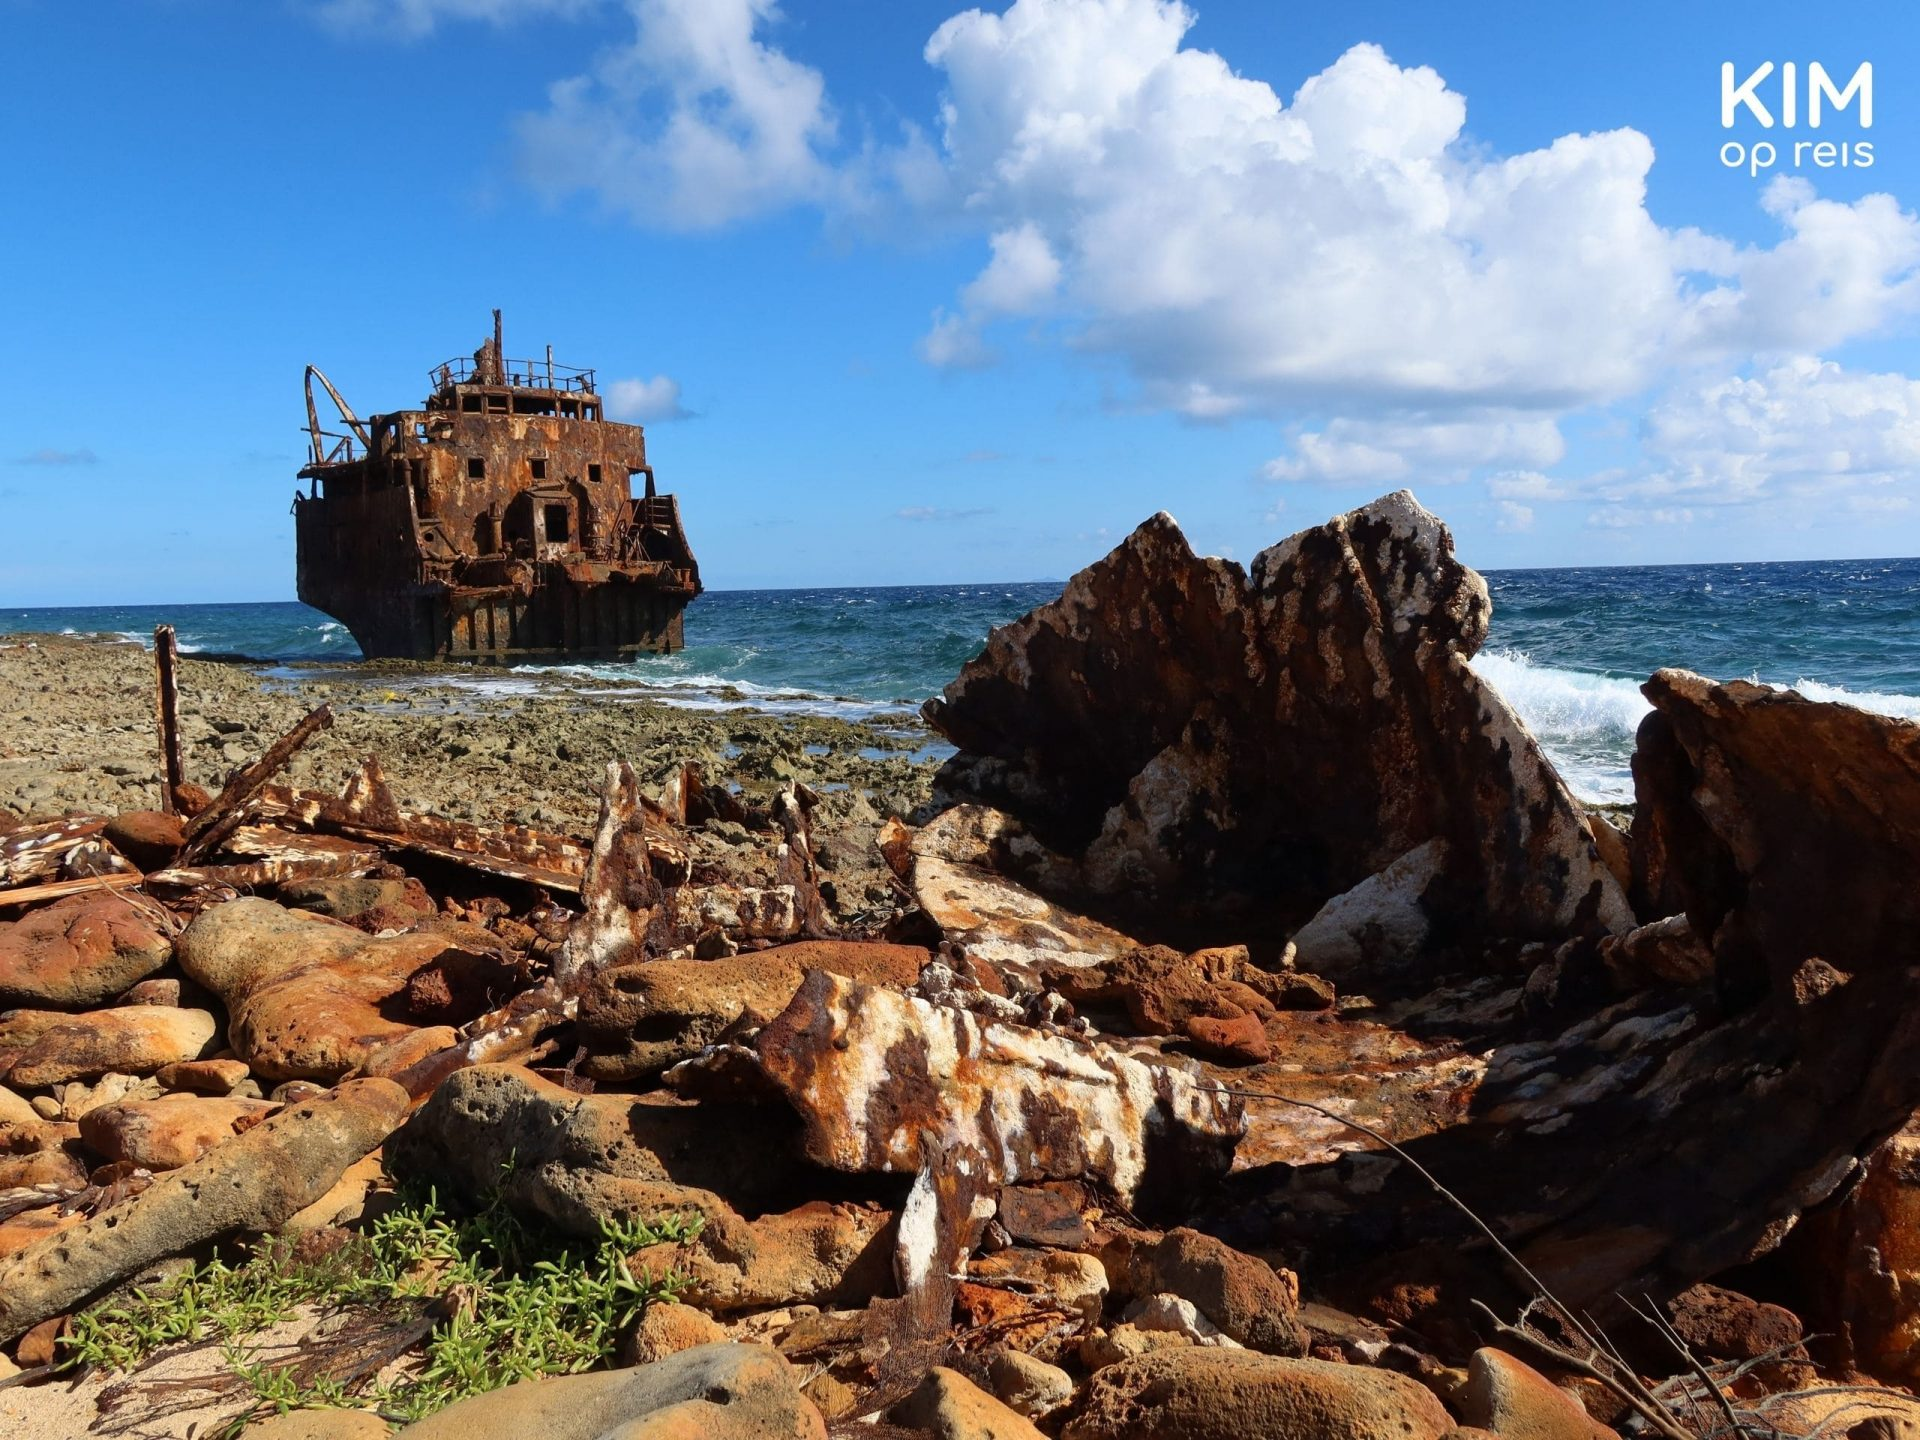 Shipwreck Klein Curaçao: Parts of ships lie on the rough coast, just off the coast is the shipwreck of an oil tanker